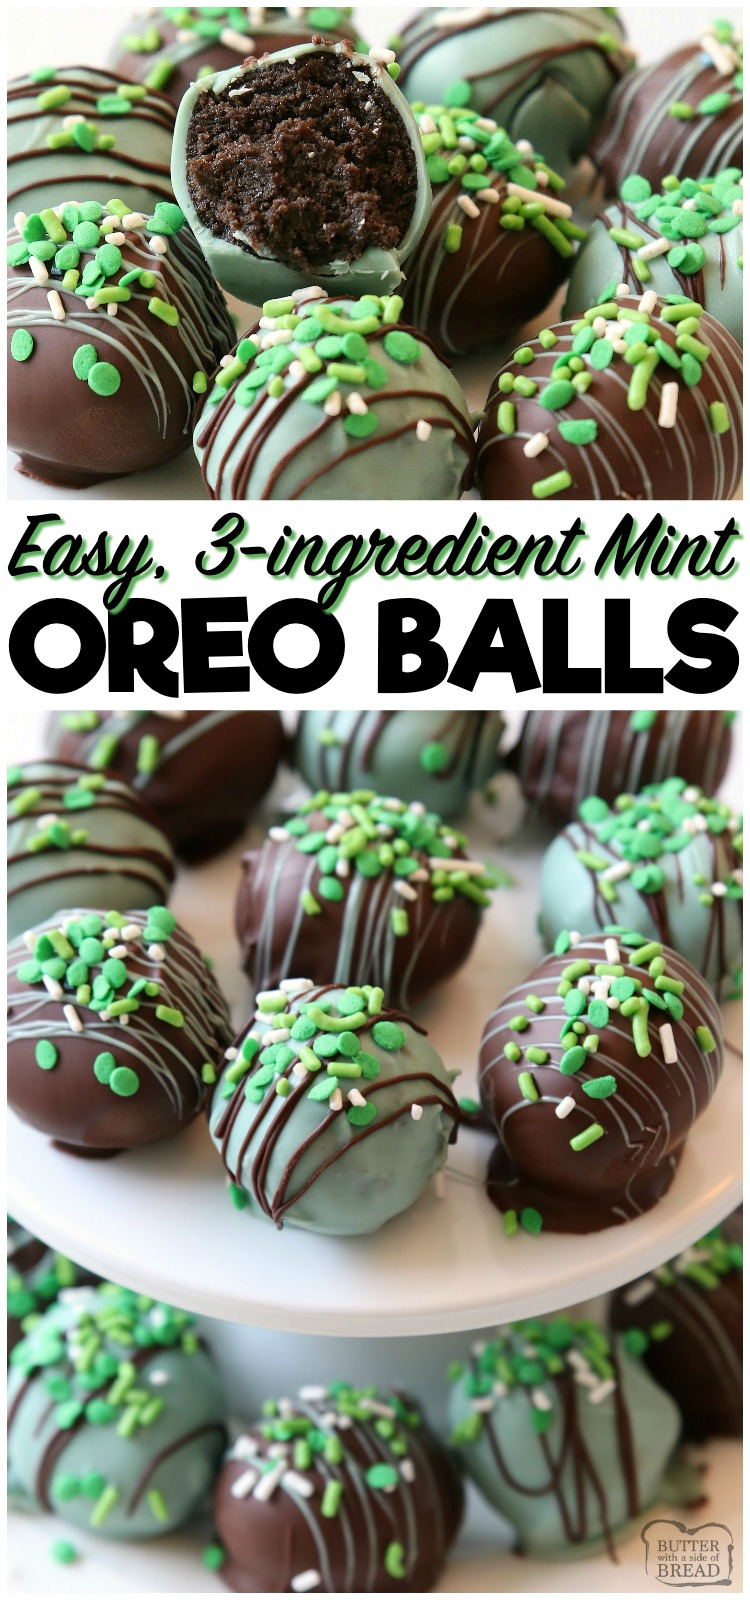 Mint Oreo Balls made with just 3 ingredients & perfect for St. Patrick's Day! Made in minutes and so delicious, no one can guess they're made with Oreo cookies! #oreo #mint #green #cookies #truffles #chocolate #Stpatricksday #candy #easy #recipe #dessert from BUTTER WITH A SIDE OF BREAD